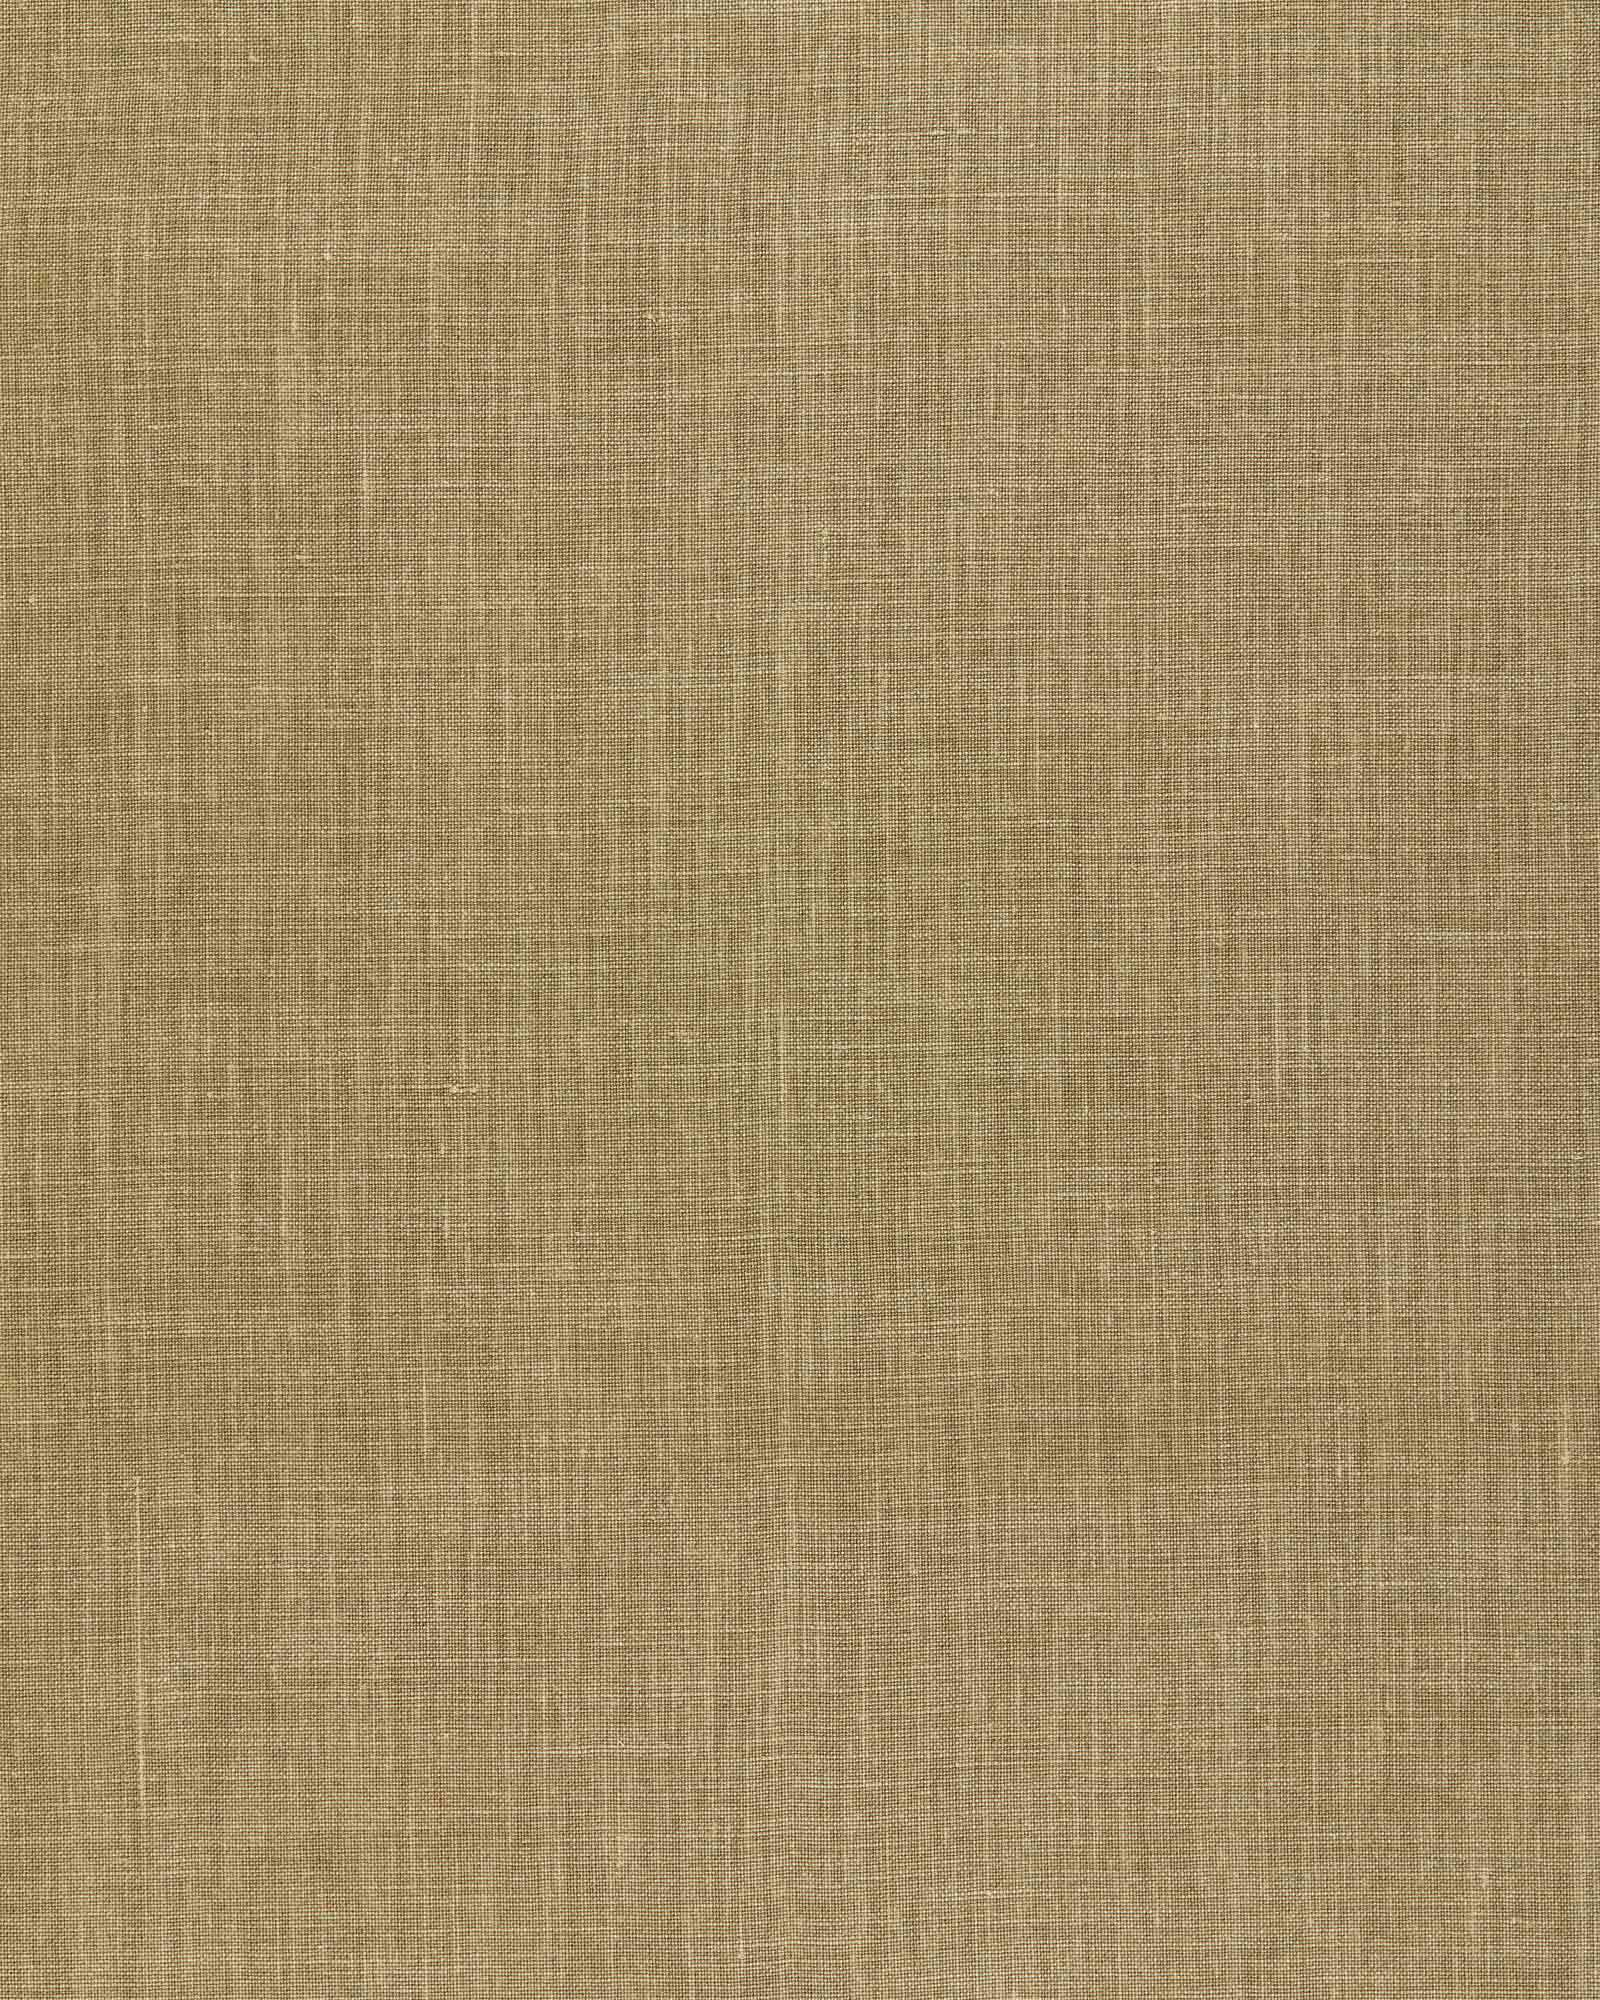 Washed Linen - Chartreuse,